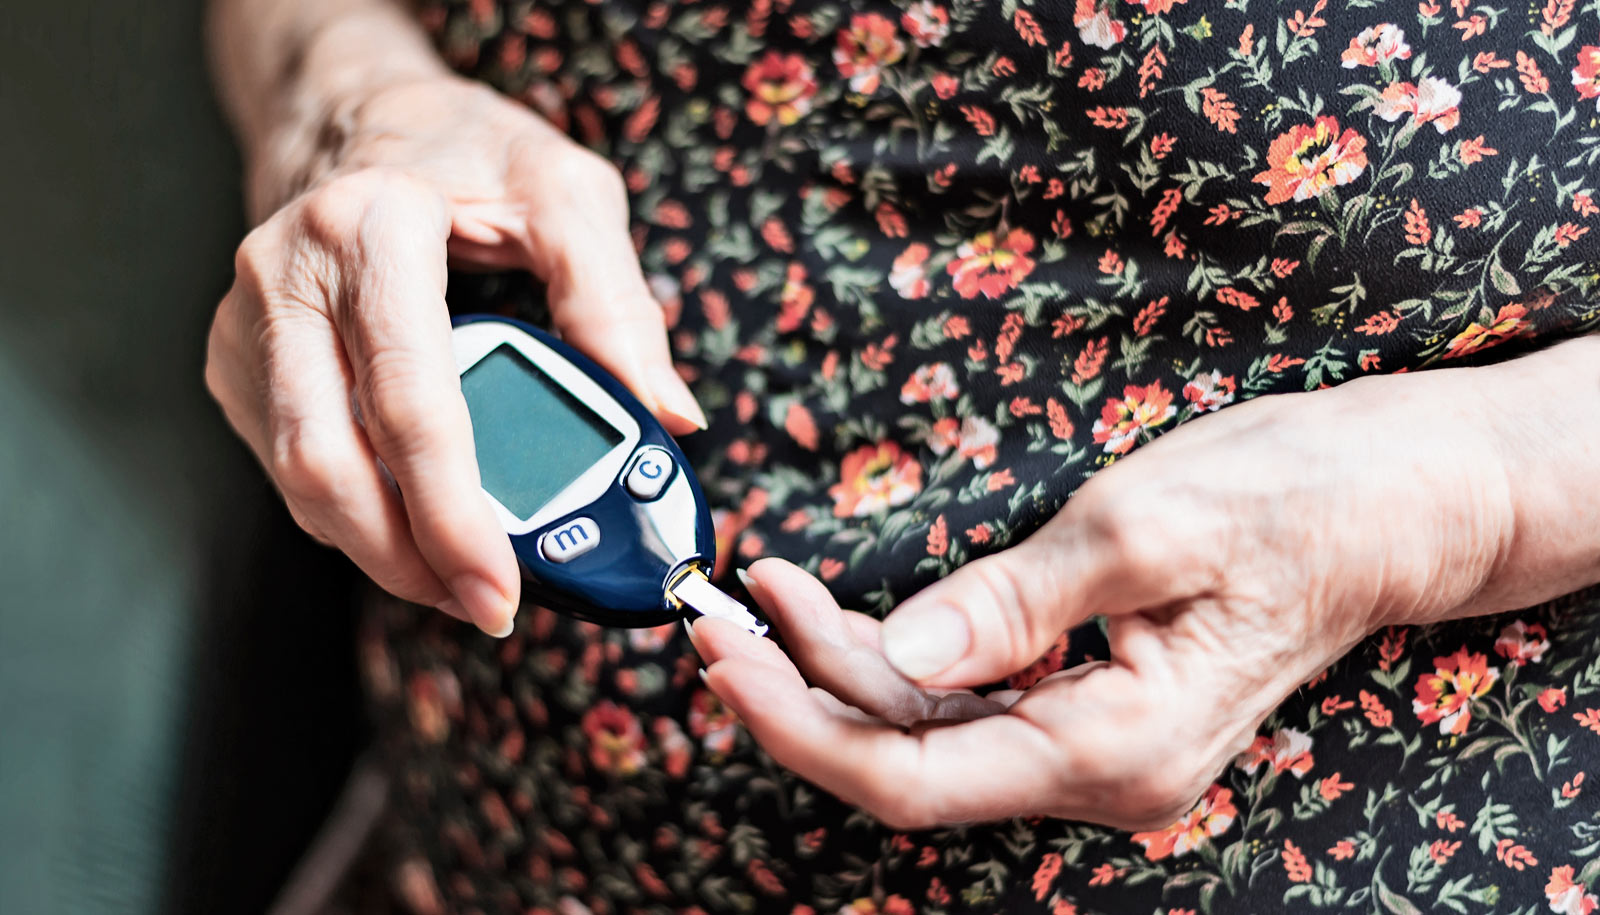 Older adults better handle stress of type 2 diabetes